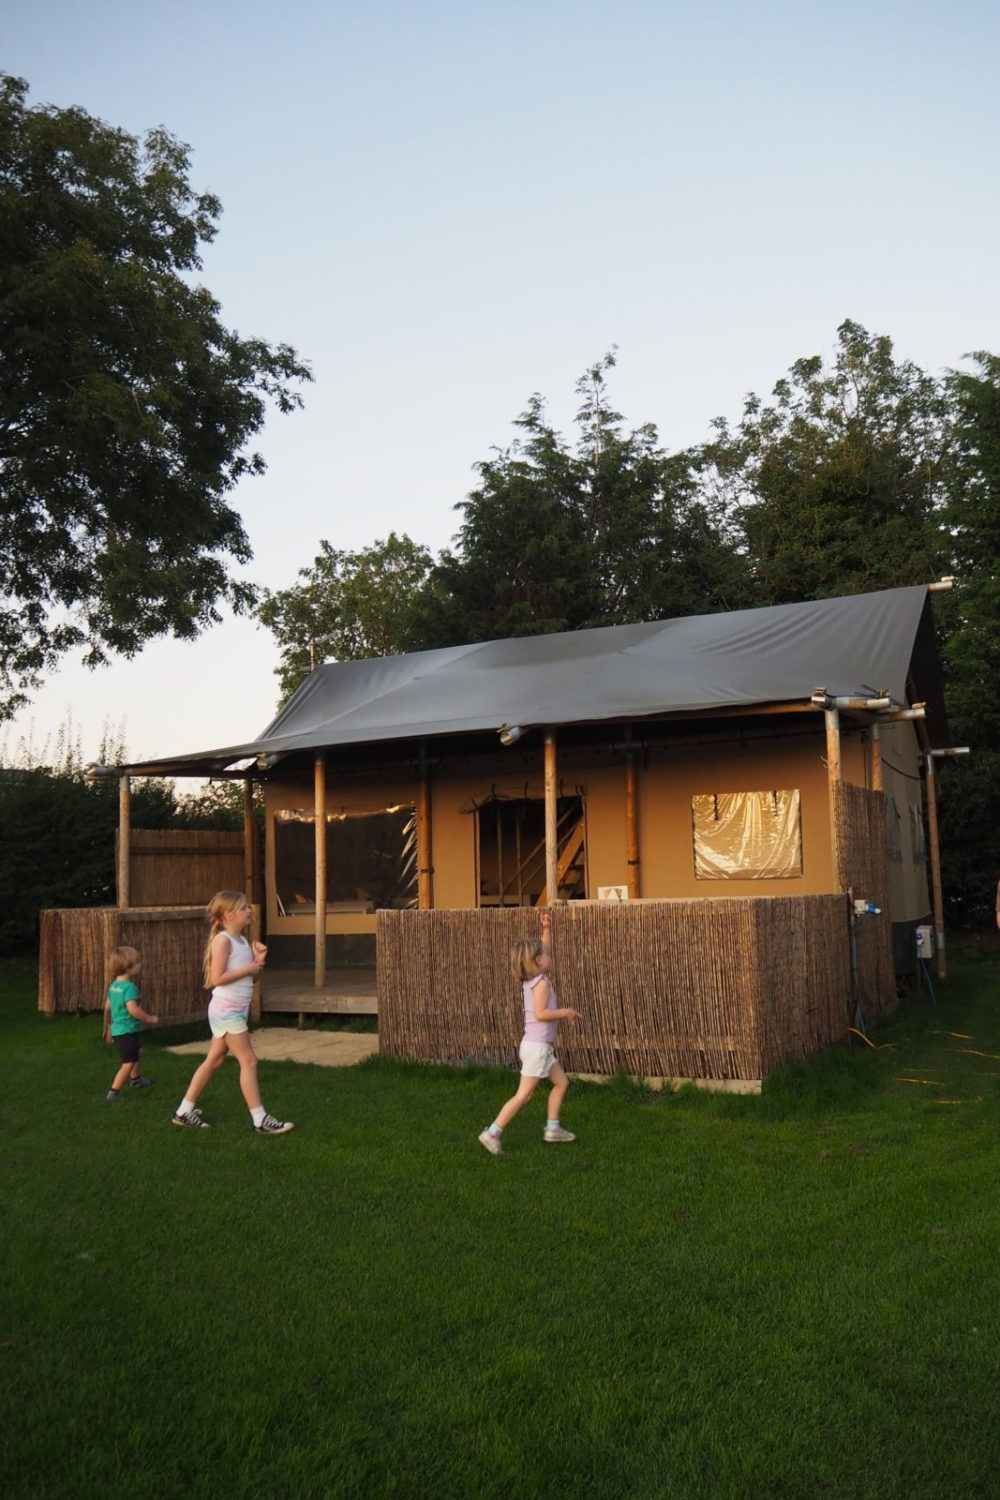 A review of safari tent lodge at Ashbourne Heights holiday park